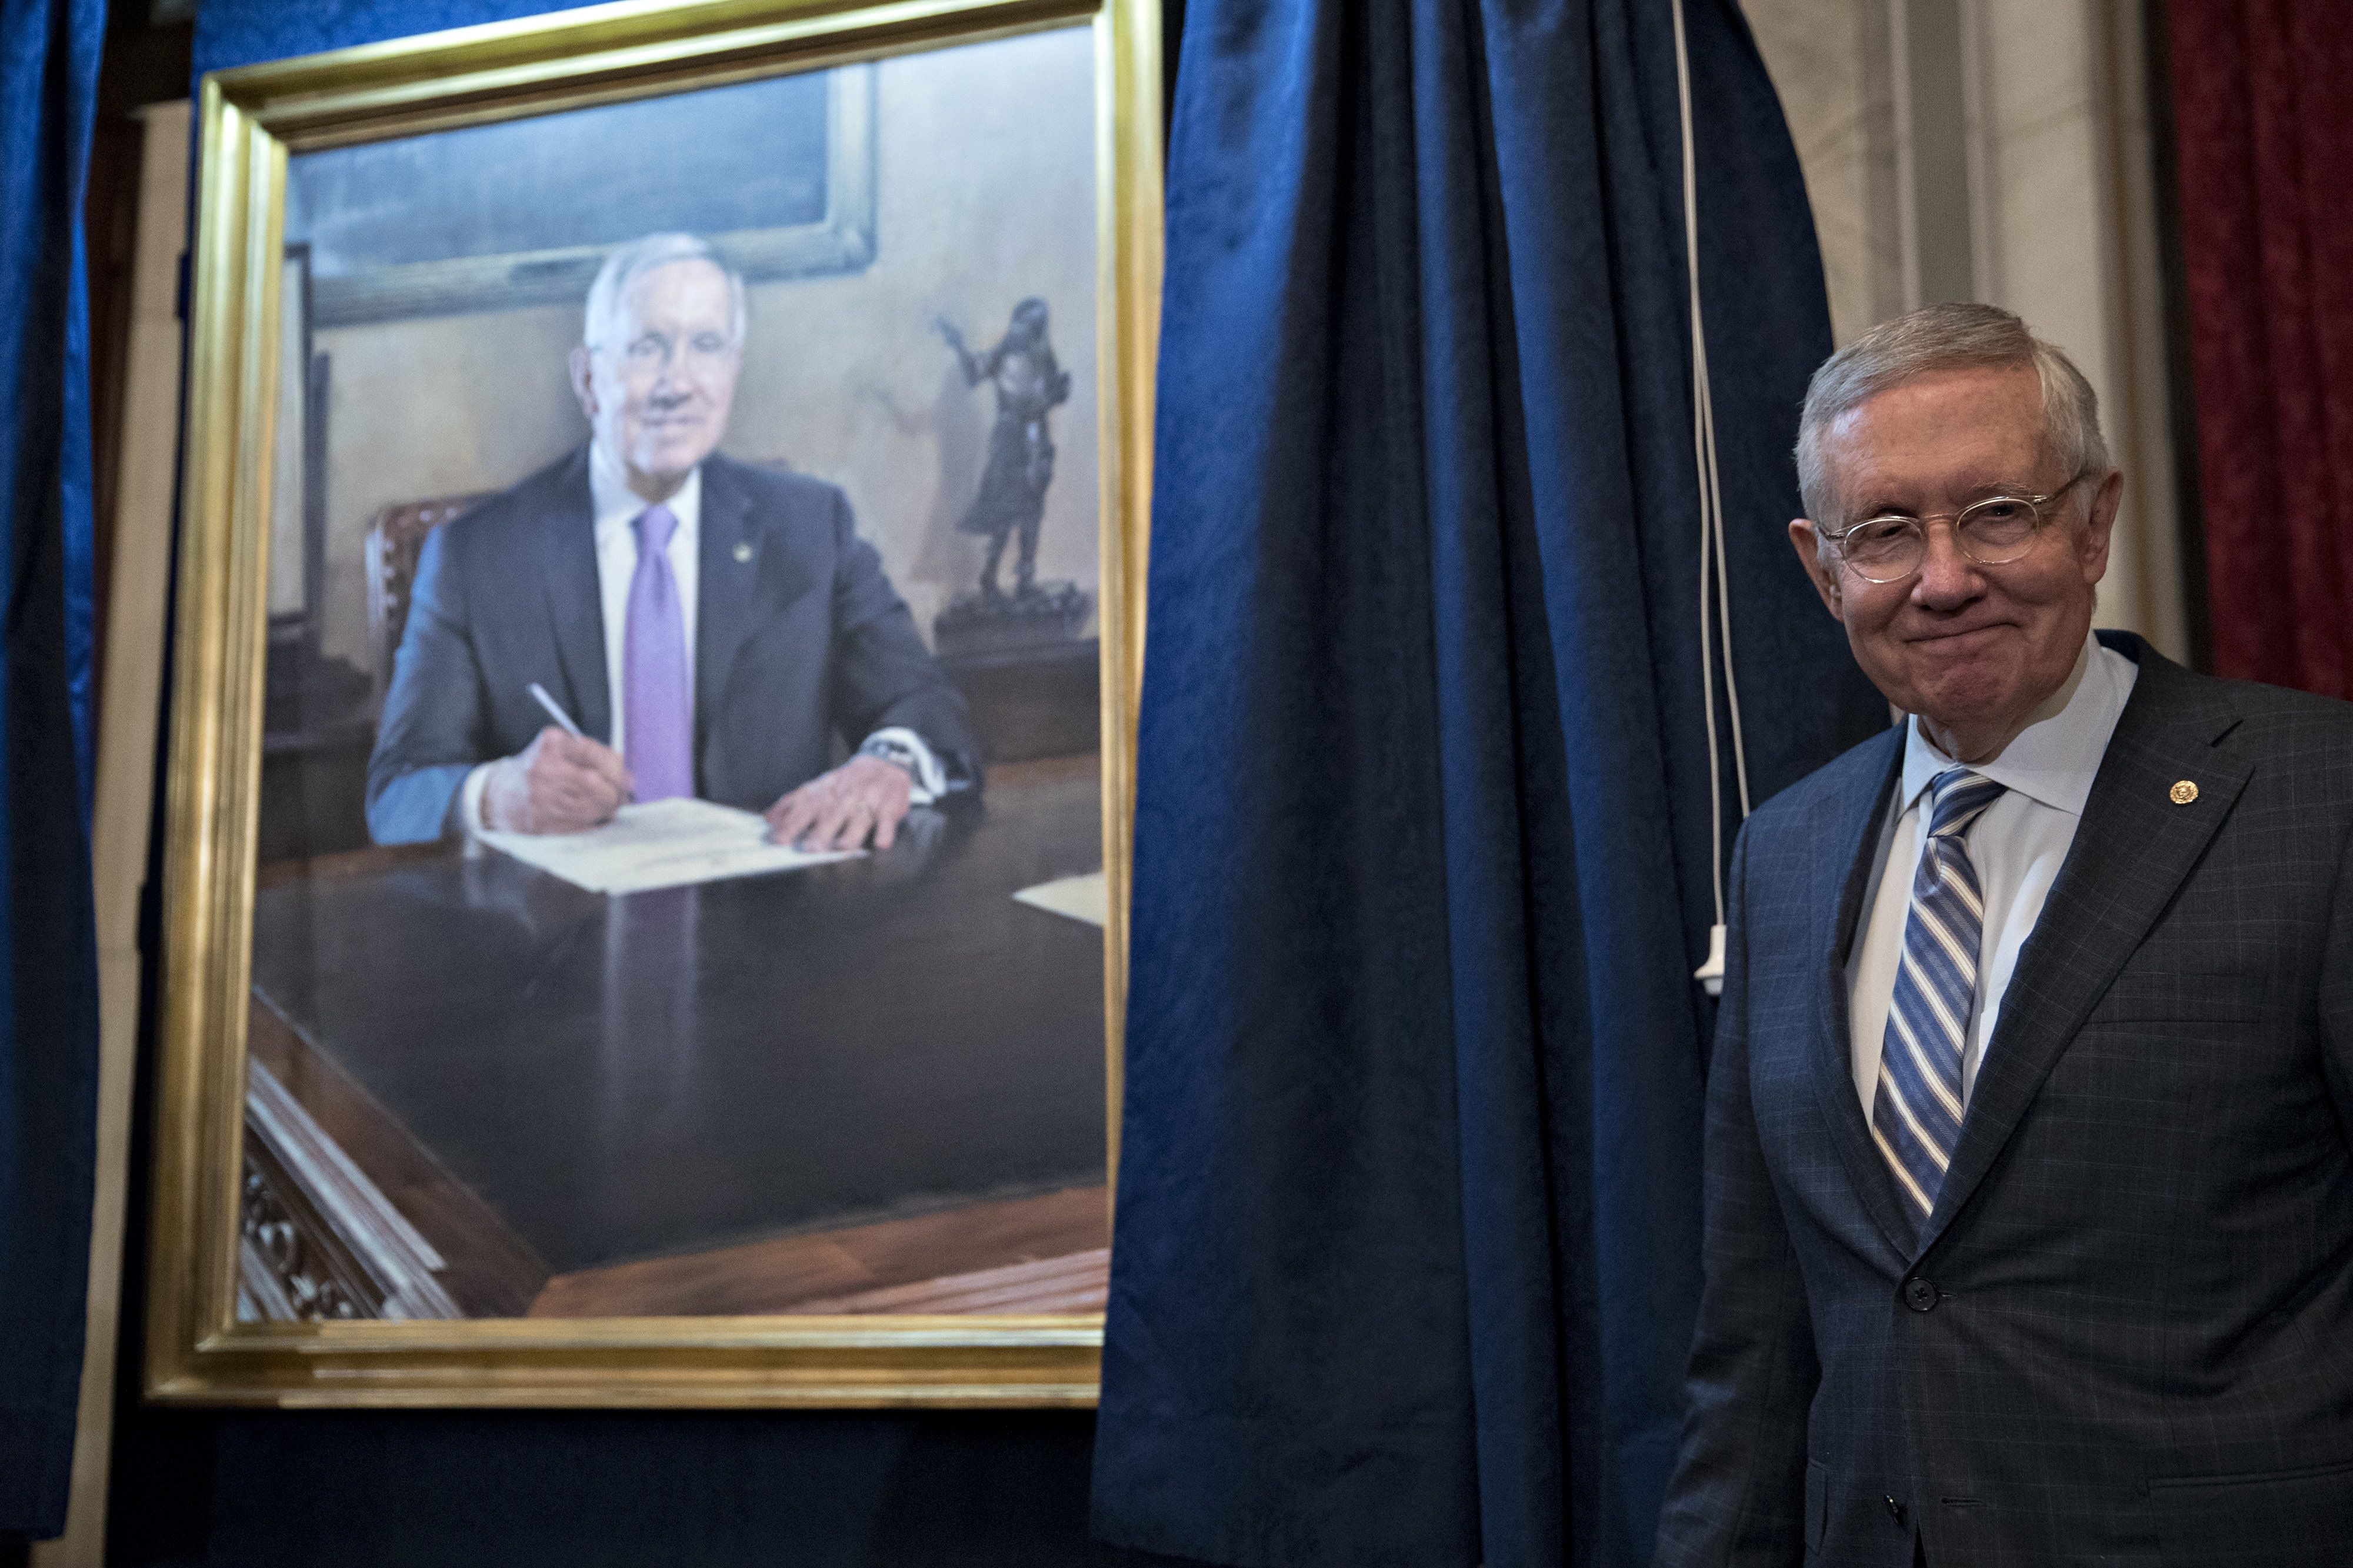 Senate Minority Leader Harry Reid, a Democrat from Nevada, stands next his official portrait during a ceremony on Capitol Hill in Washington, D.C., U.S., on Thursday, Dec. 8, 2016. Reid, the tart-tongued ex-boxer known for pugilistic rhetoric about Republicans, is marking the end of his 34-year career in Congress with the unveiling of his official portrait that was painted by former Senate staffer Gavin Glakas. Photographer: Andrew Harrer/Bloomberg via Getty Images